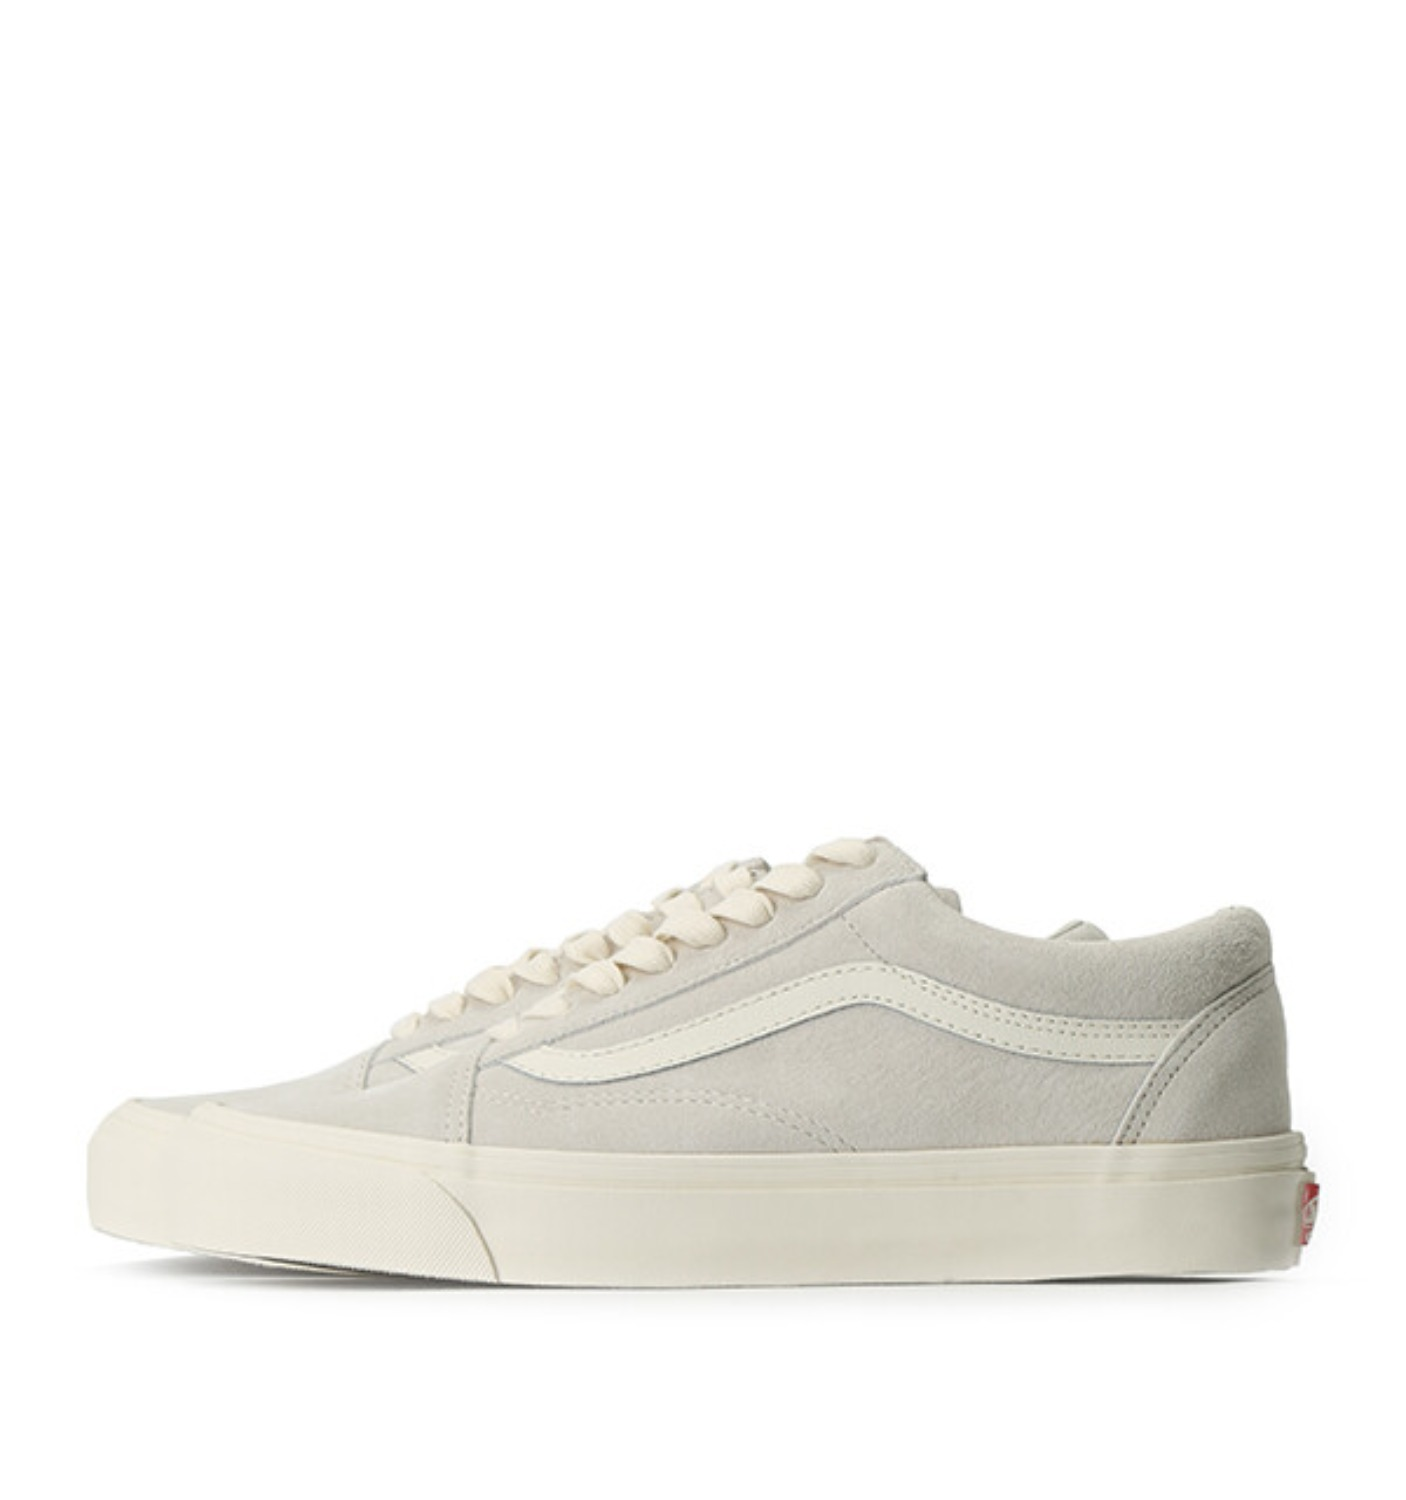 OG OLD SKOOL LX(LEATHER/SUEDE) MASHMALLOW (VN0A36C8UN5)